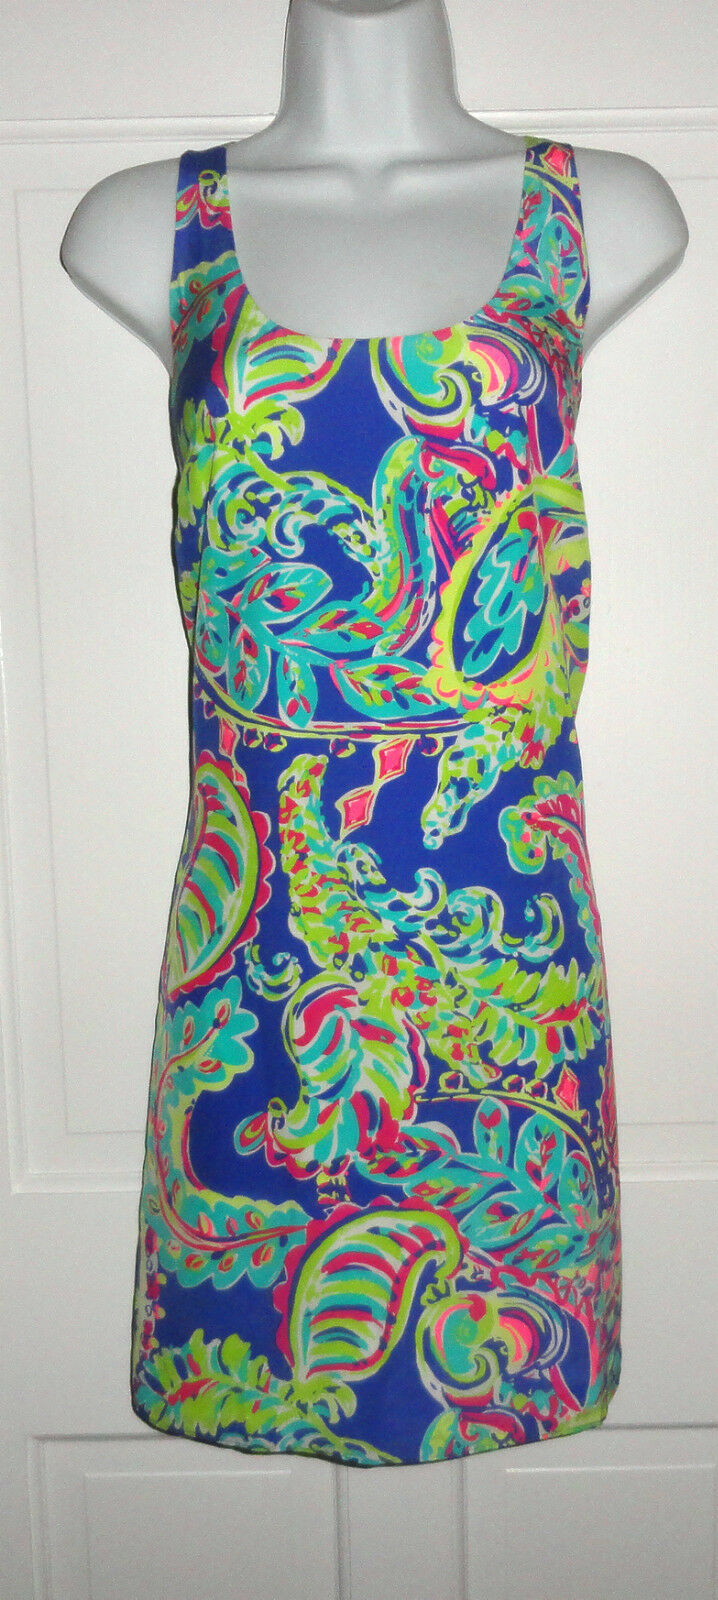 NWT LILLY PULITZER MULTI TOUCAN PLAY SILK POPPY DRESS